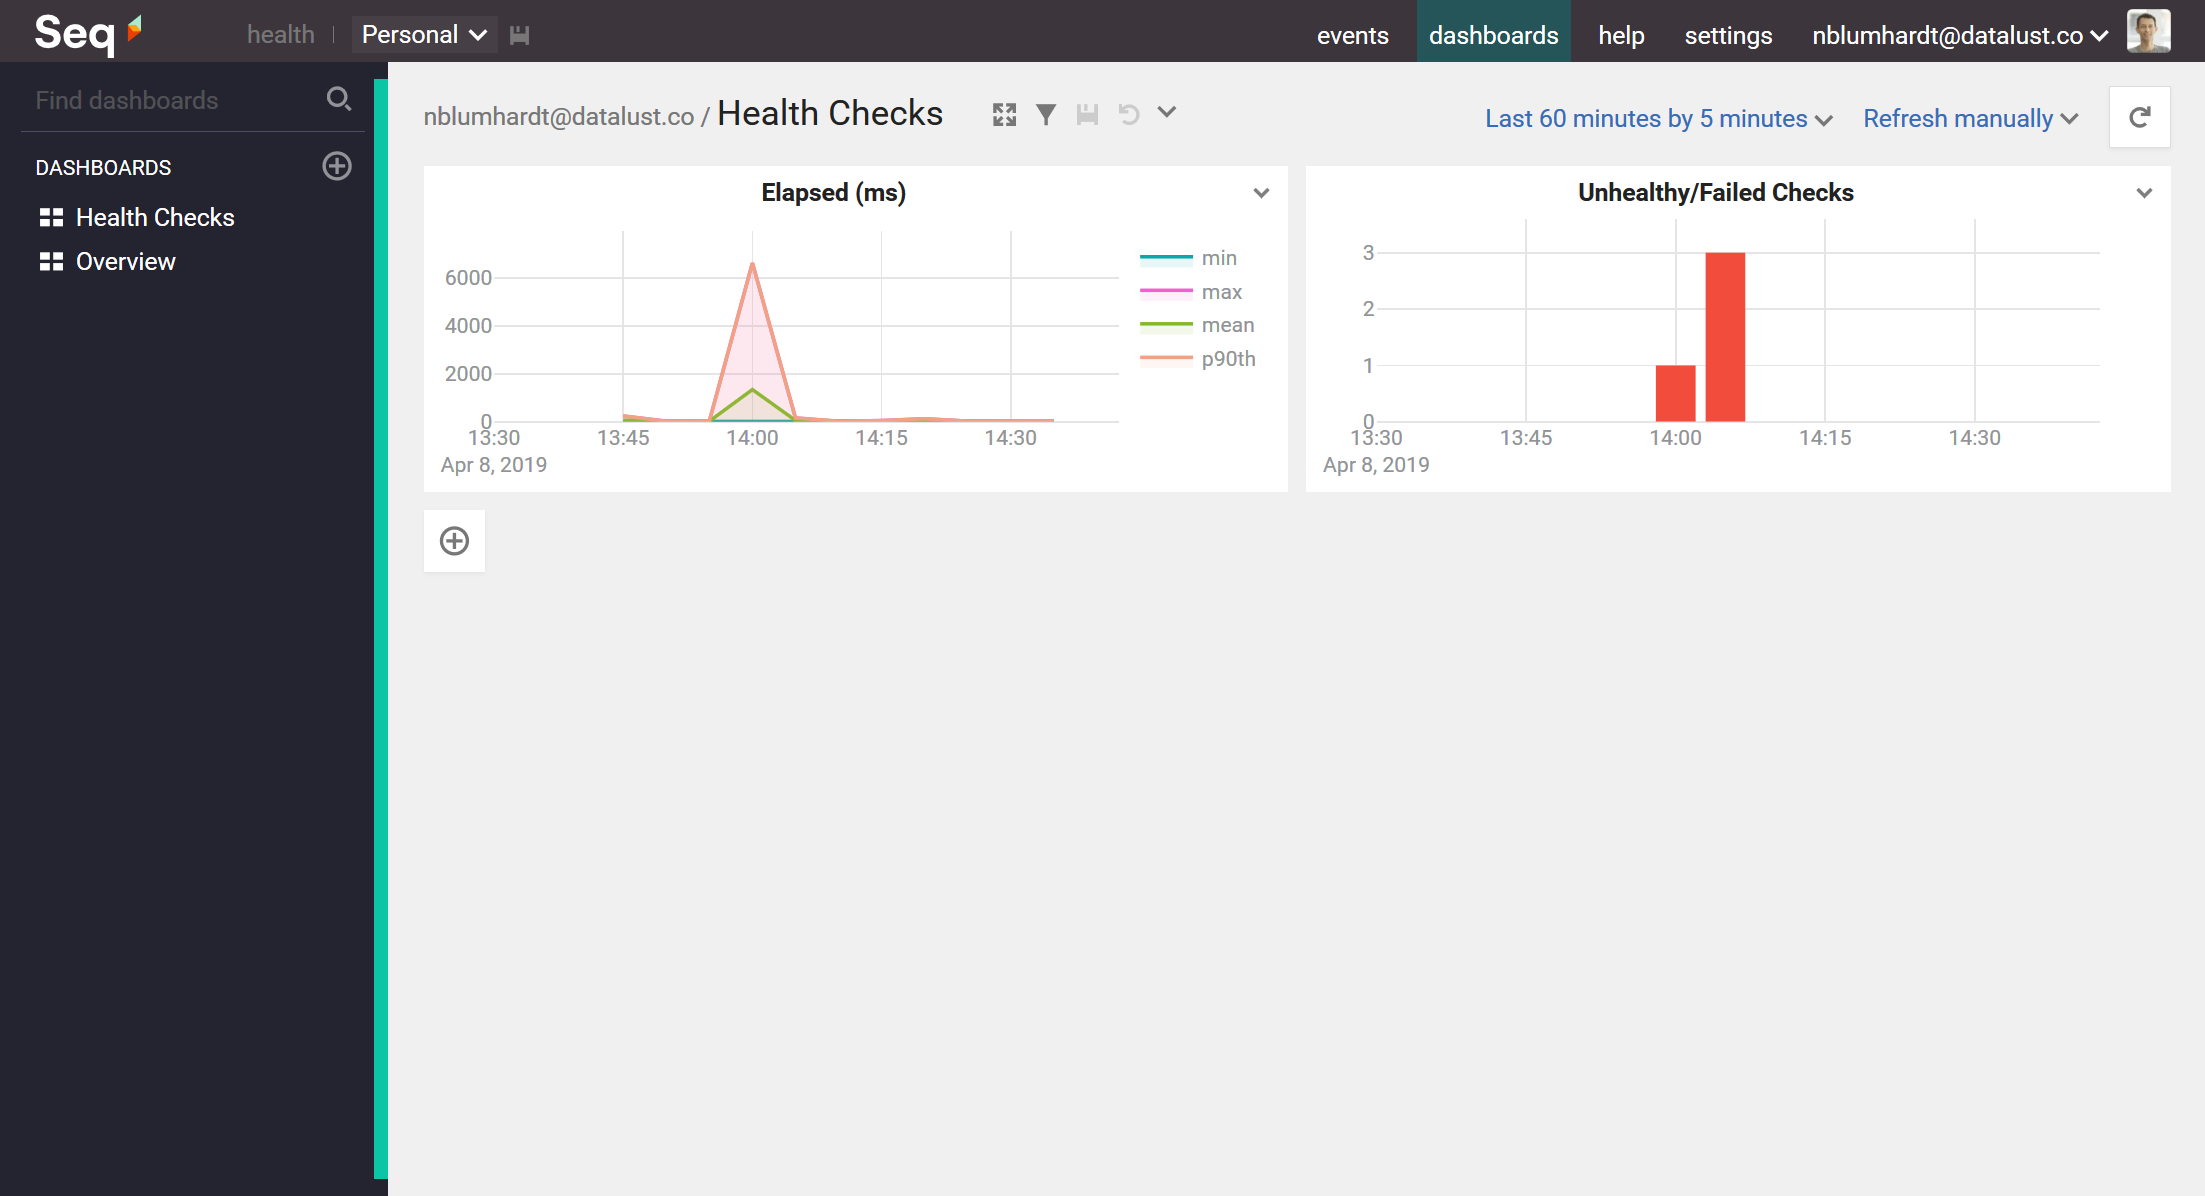 Simple health check dashboard